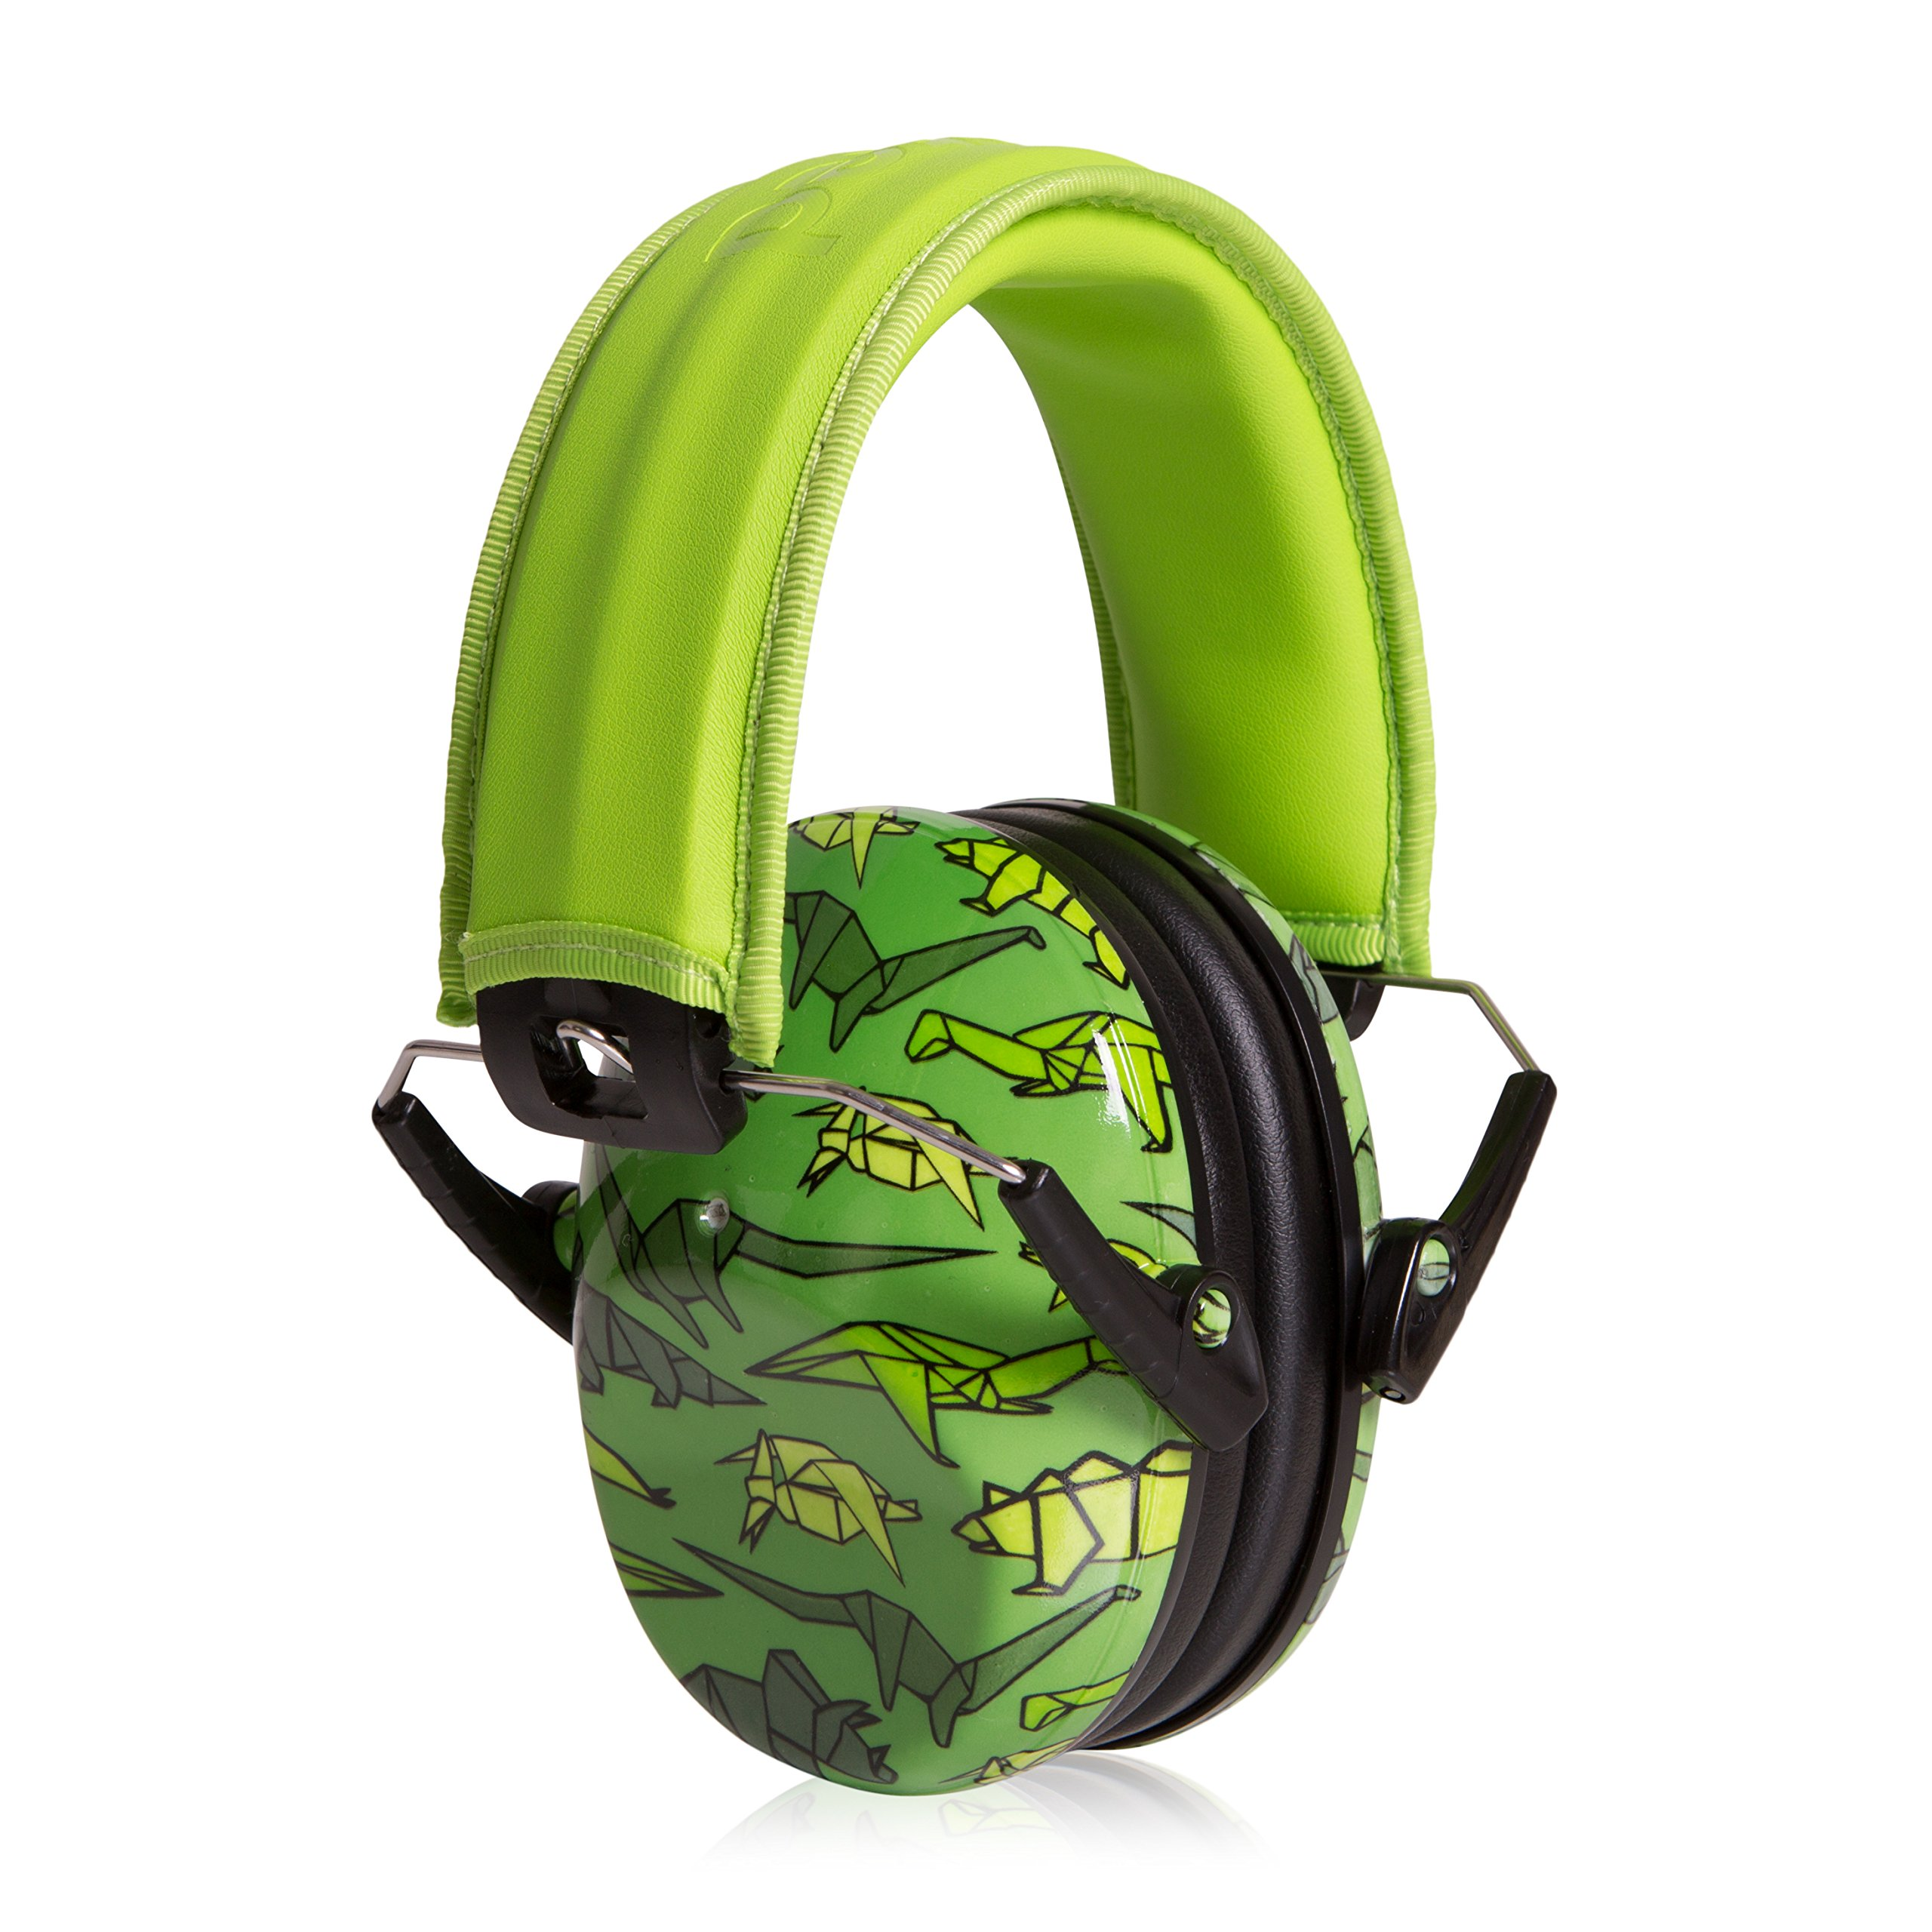 Muted Designer Hearing Protection For Infants & Kids - Adjustable Children's Ear Muffs from Toddler to Teen - Origamisaurus